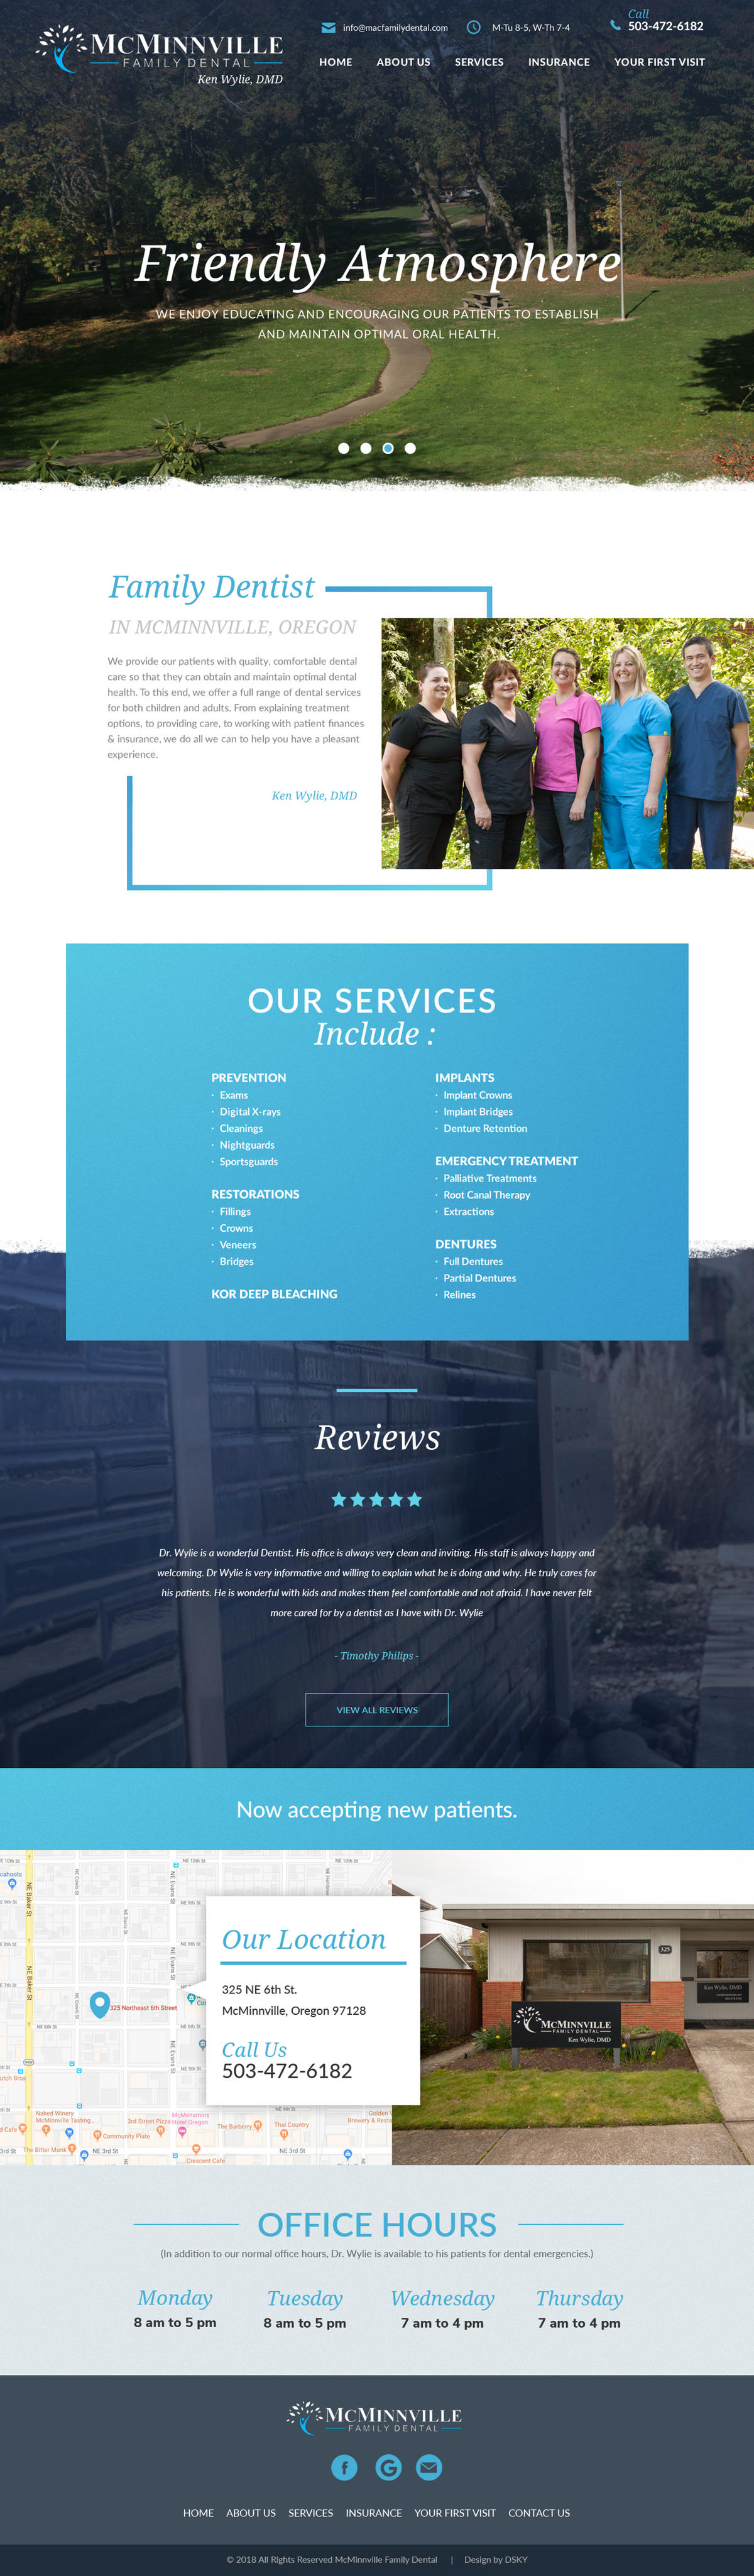 Redesign front page of website